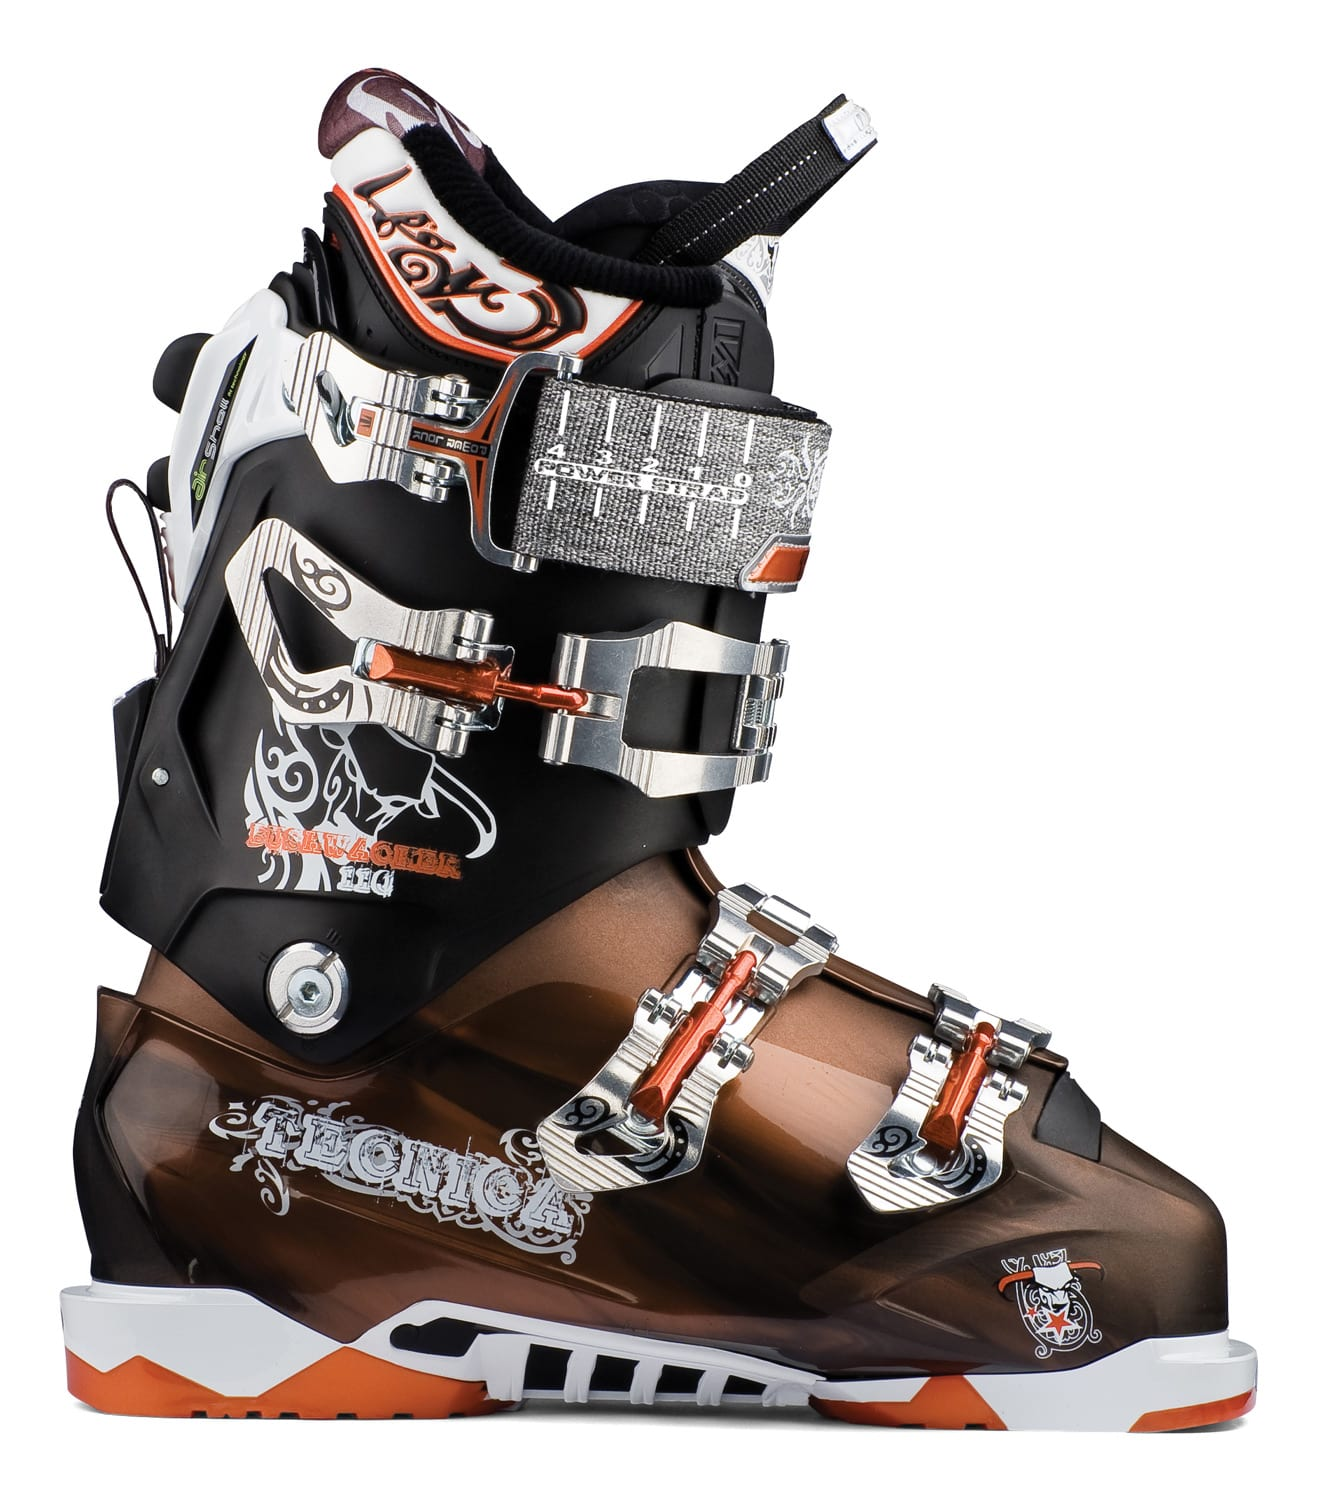 Shop for Tecnica Bushwacker Air Shell Ski Boots Copper/Black - Men's